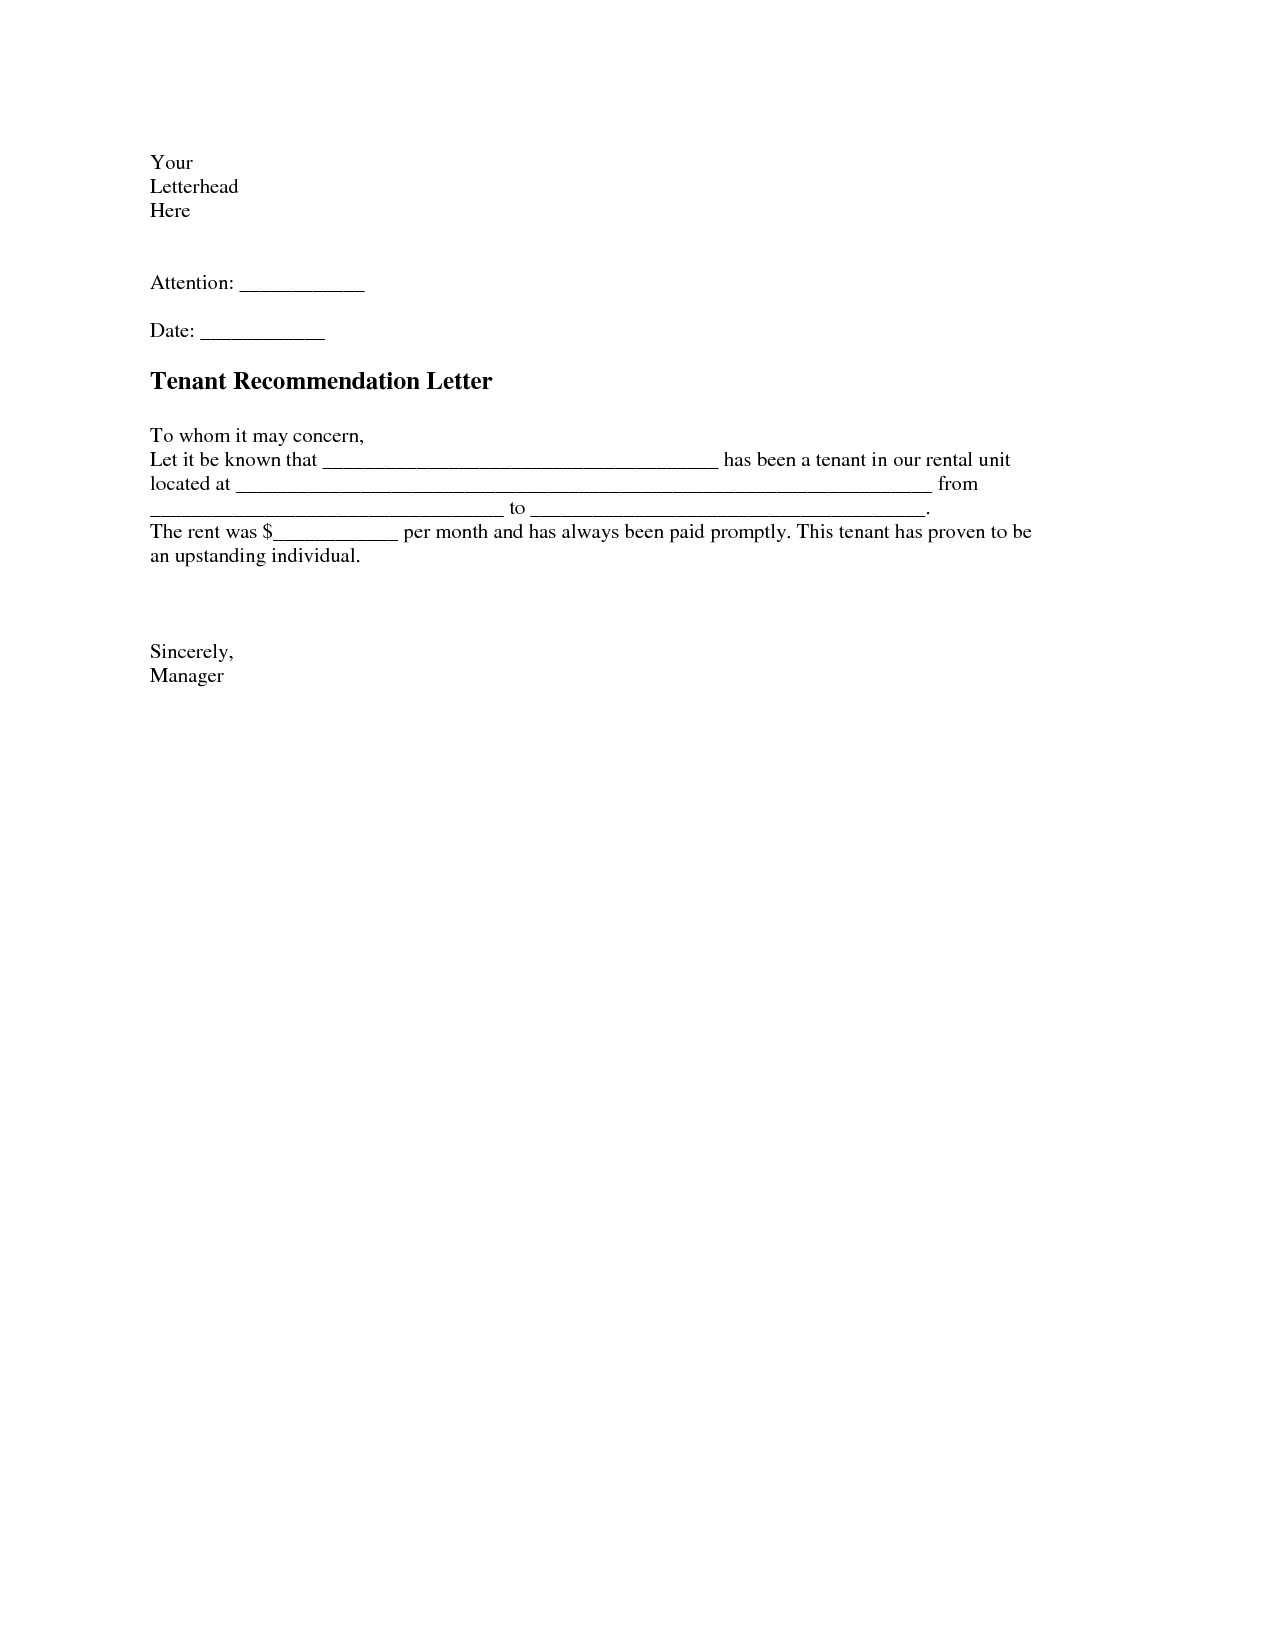 Rent Free Letter From Parents Template - Tenant Re Mendation Letter A Tenant Re Mendation Letter is